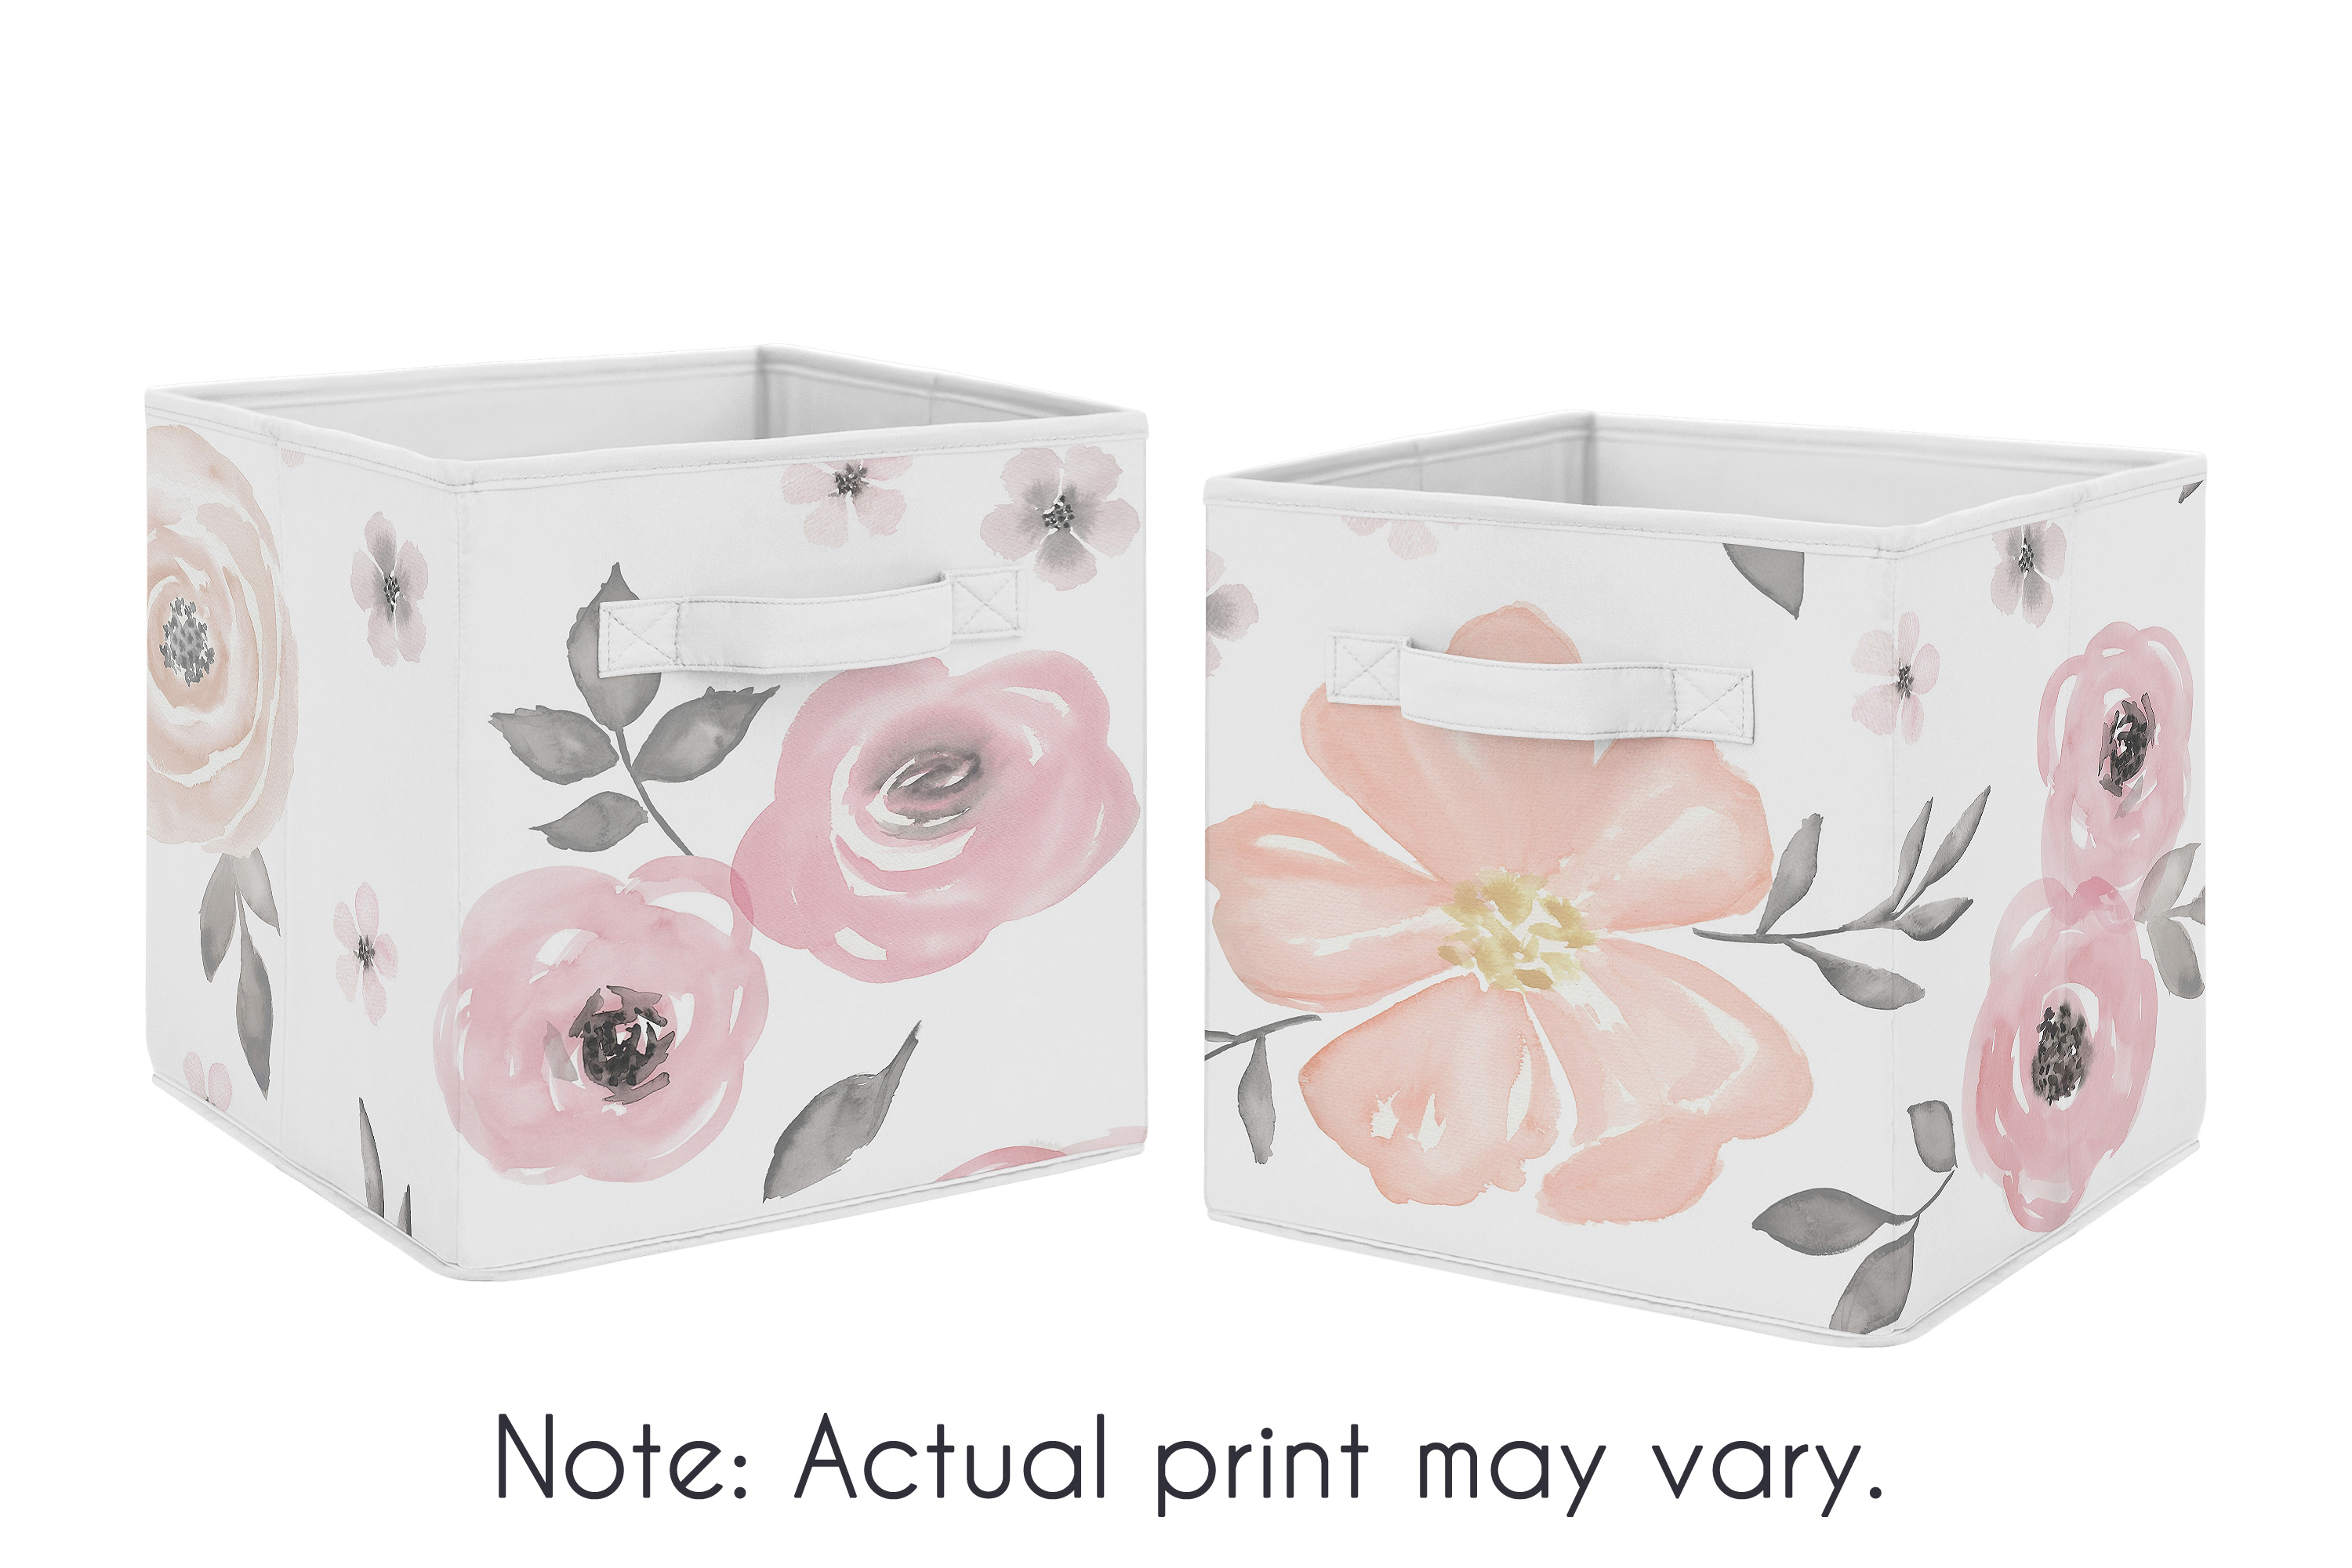 Sweet Jojo Designs Fabric Storage Bins Offer A Stylish Yet Functional  Storage Solution For Toys, Clothes, Household Clutter And More.